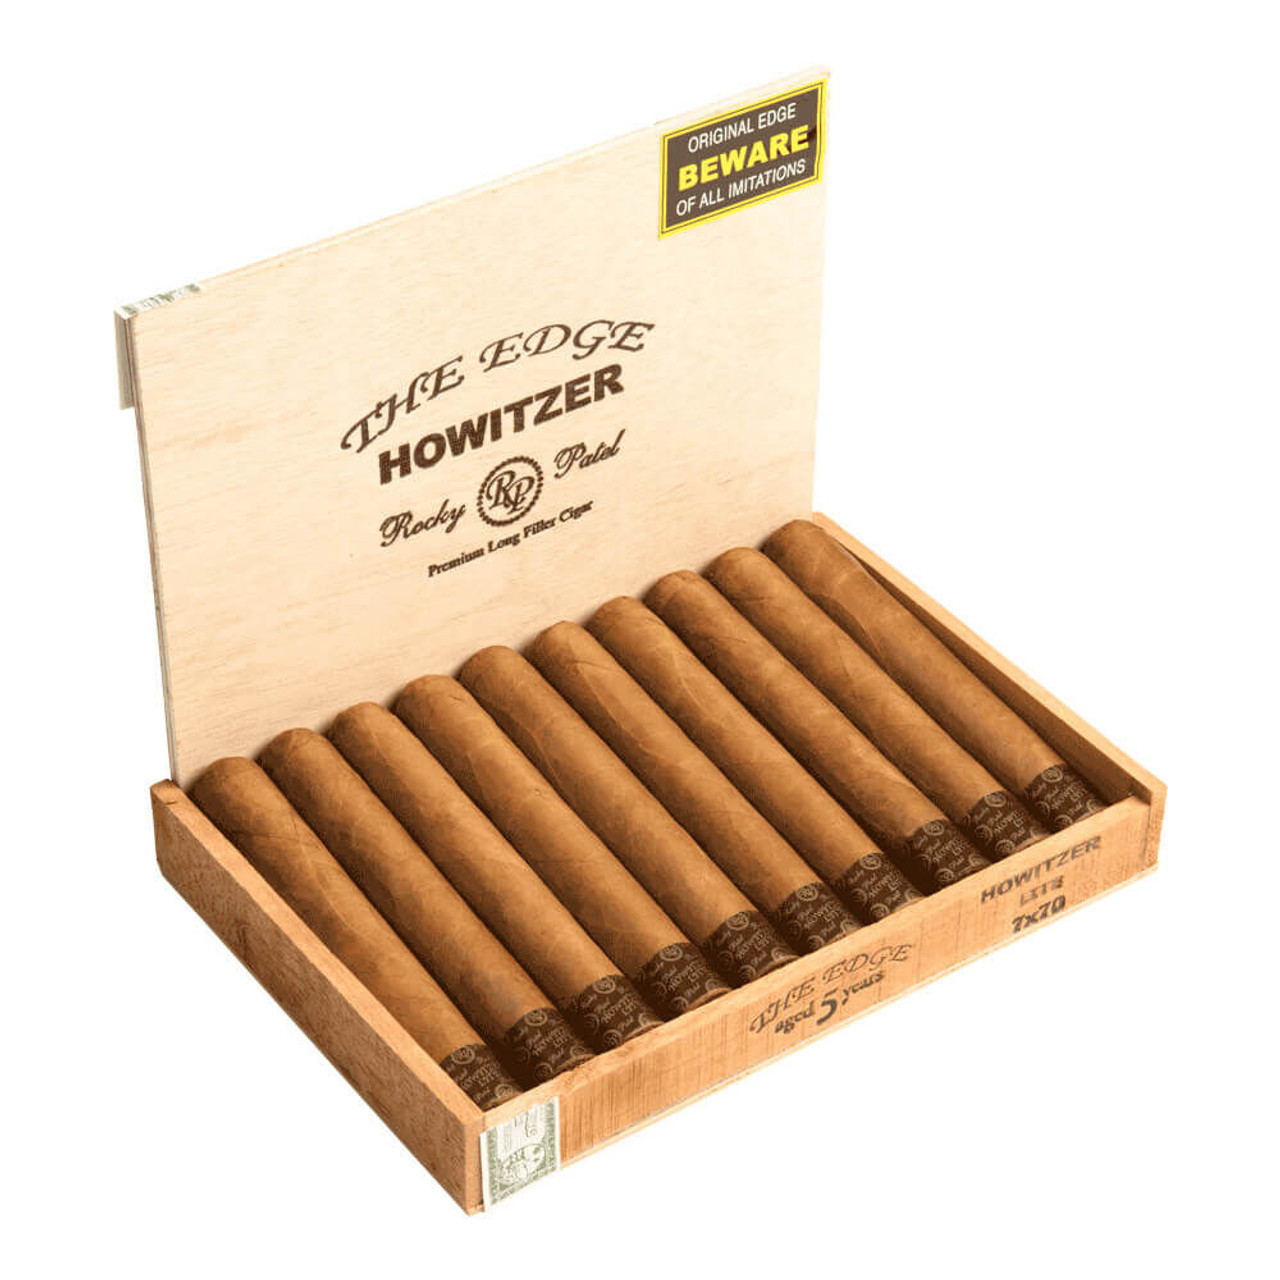 Rocky Patel The Edge Connecticut Howitzer Cigars - 7 x 70 (Box of 10)